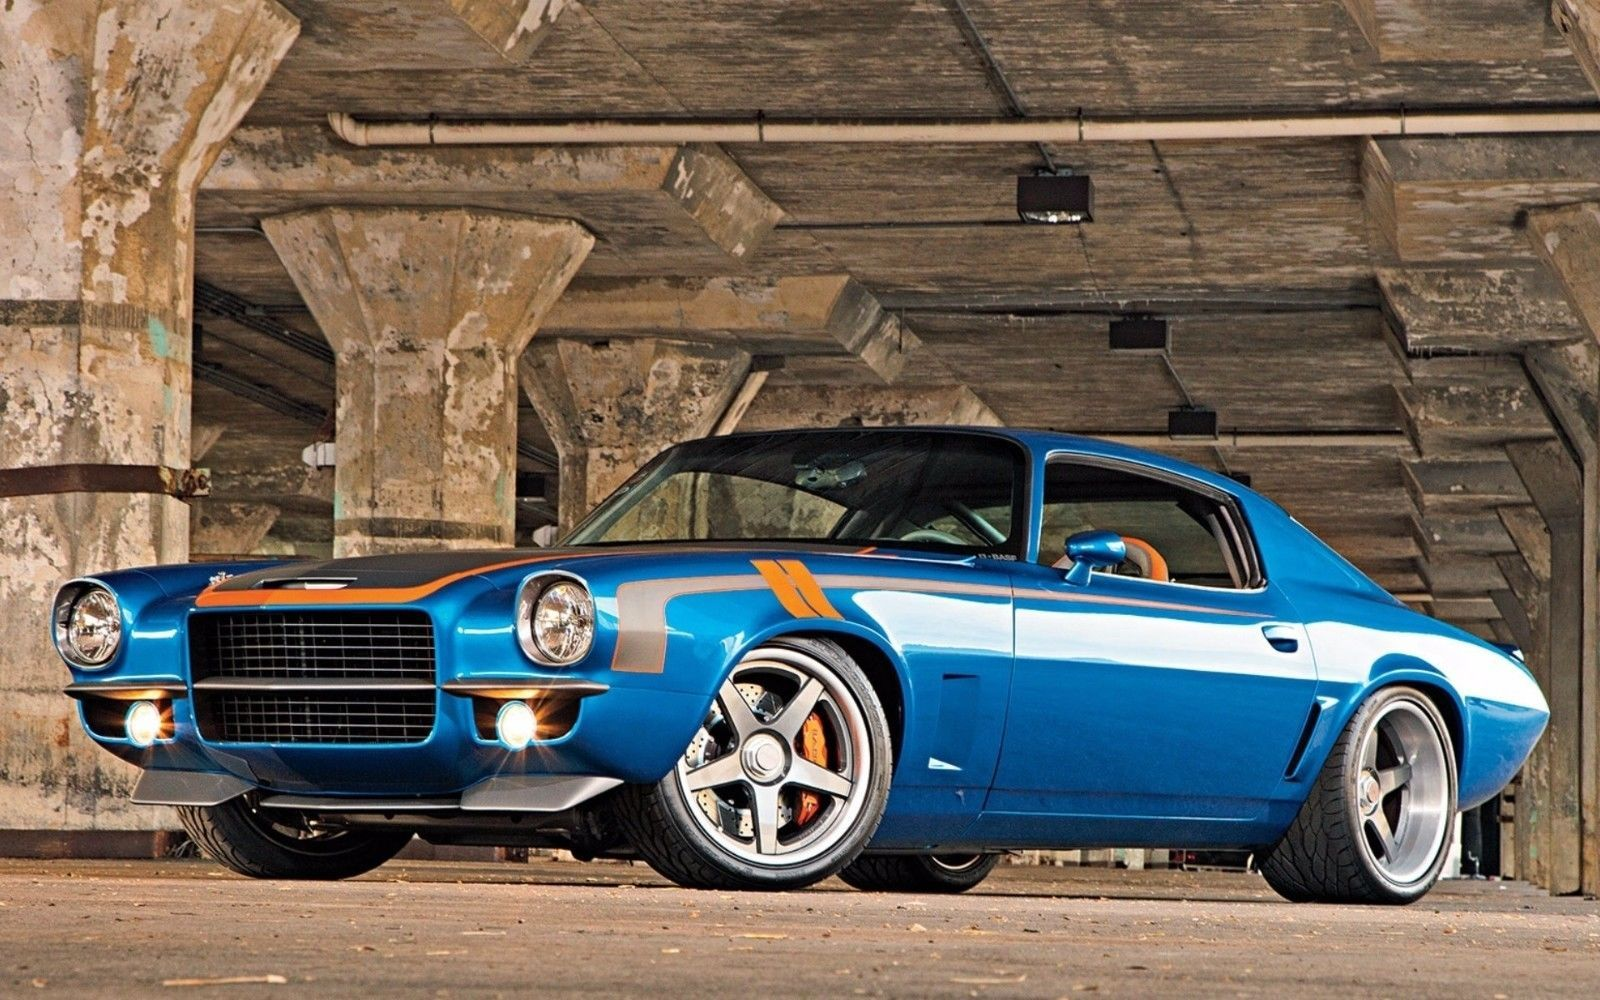 $12.95 - 1971 Tuning Chevrolet Camaro Hot Rod Muscle Cars Mini ...